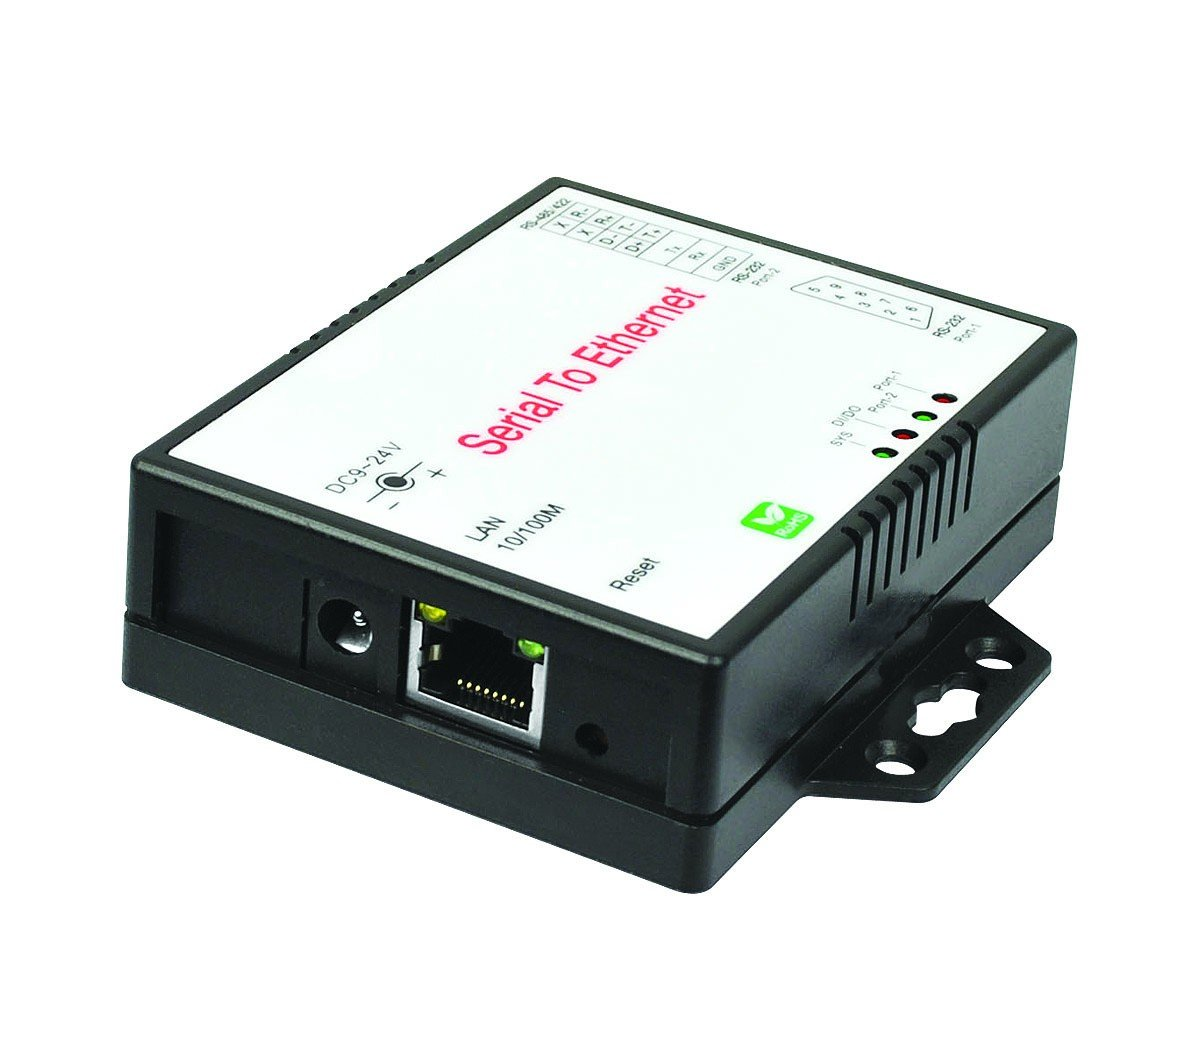 SIIG 2-Port RS-232/422/485 Serial over IP Ethernet Device Server